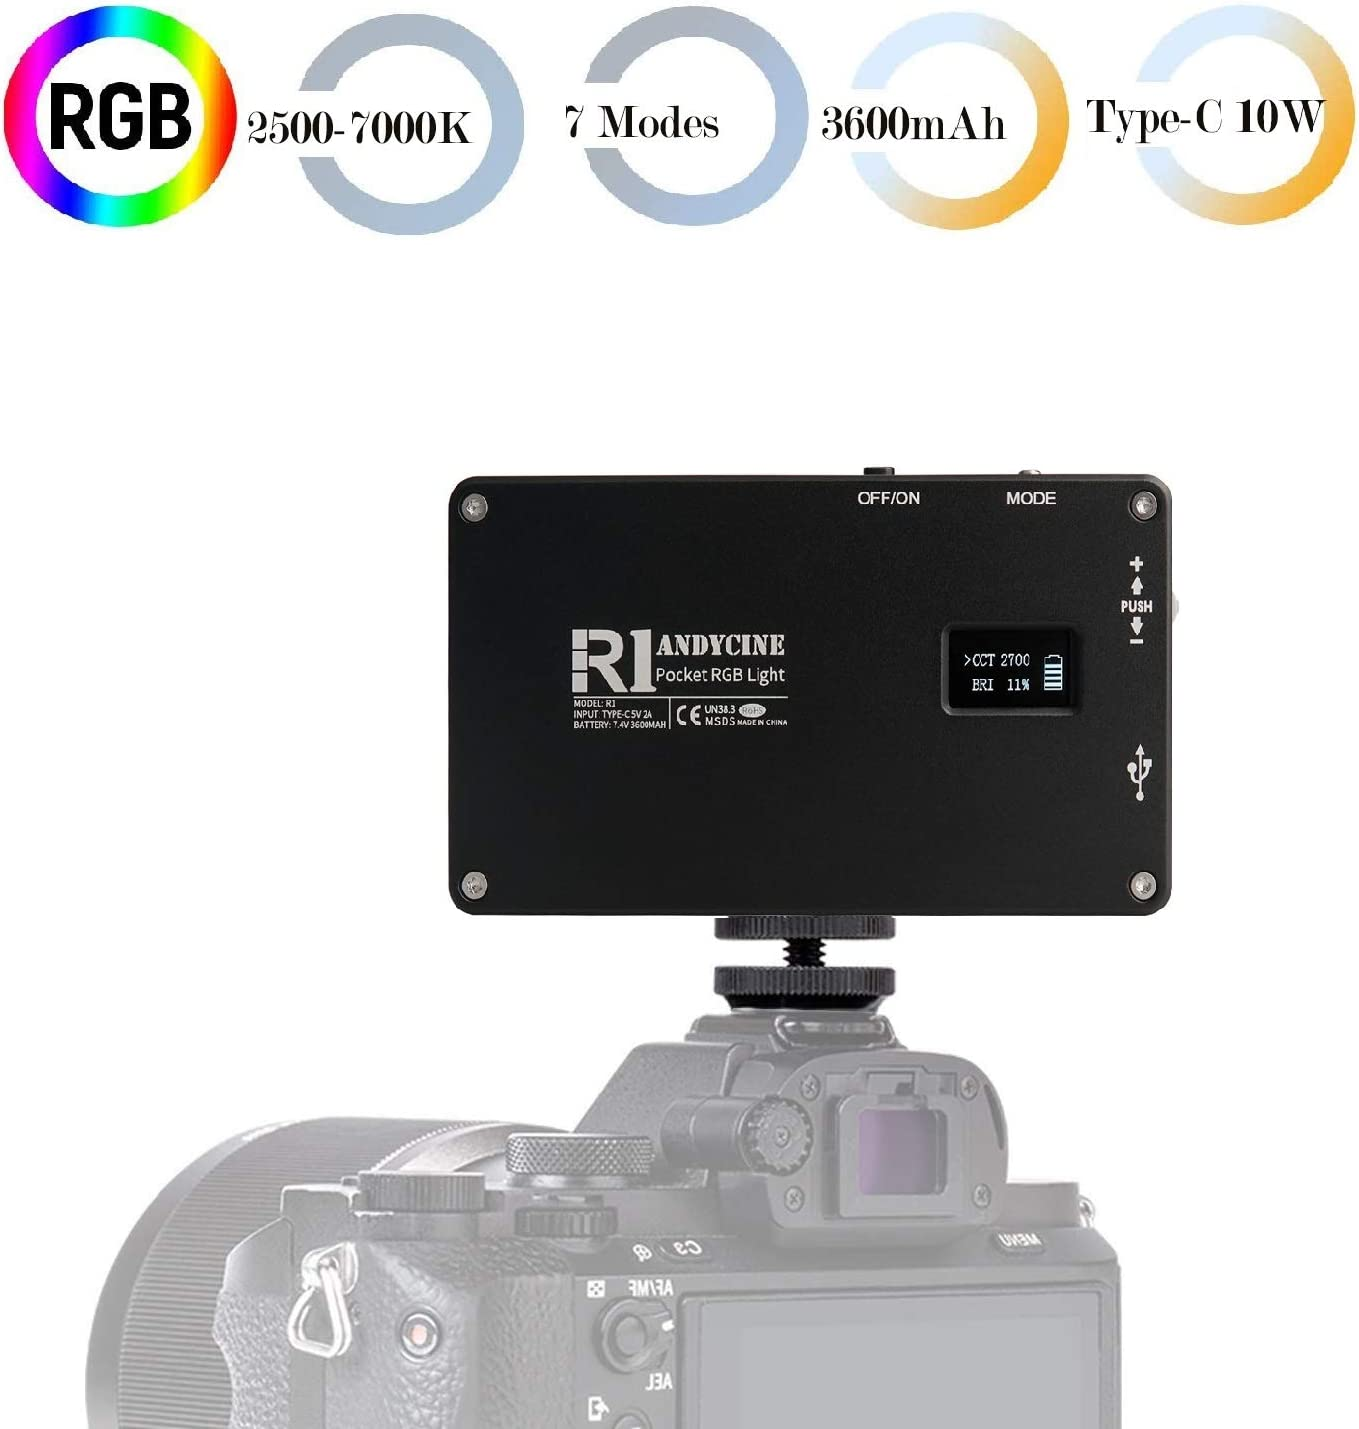 ANDYCINE R1 RGB Pocket Light, Mini USB-C 10W On-Camera Vlogger Video Light 2500-7000K Dimmable with 3600mAh Built in Battery for Sony, Nikon, Canon, Panasonic, Fuji, Filming,Gimbals and More